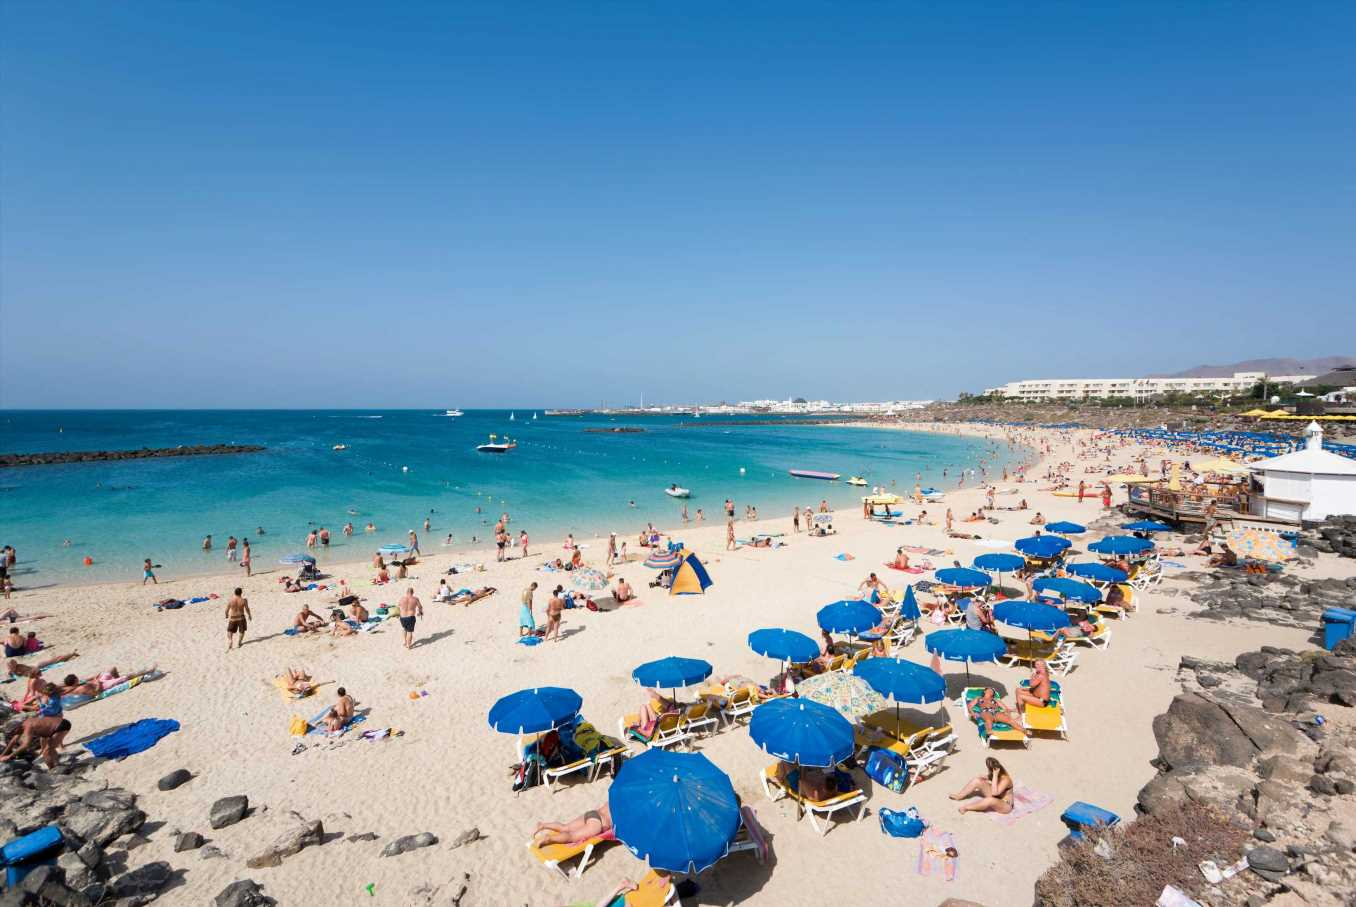 Jet2 adds more flights to Tenerife, Lanzarote and Turkey due to booming demand